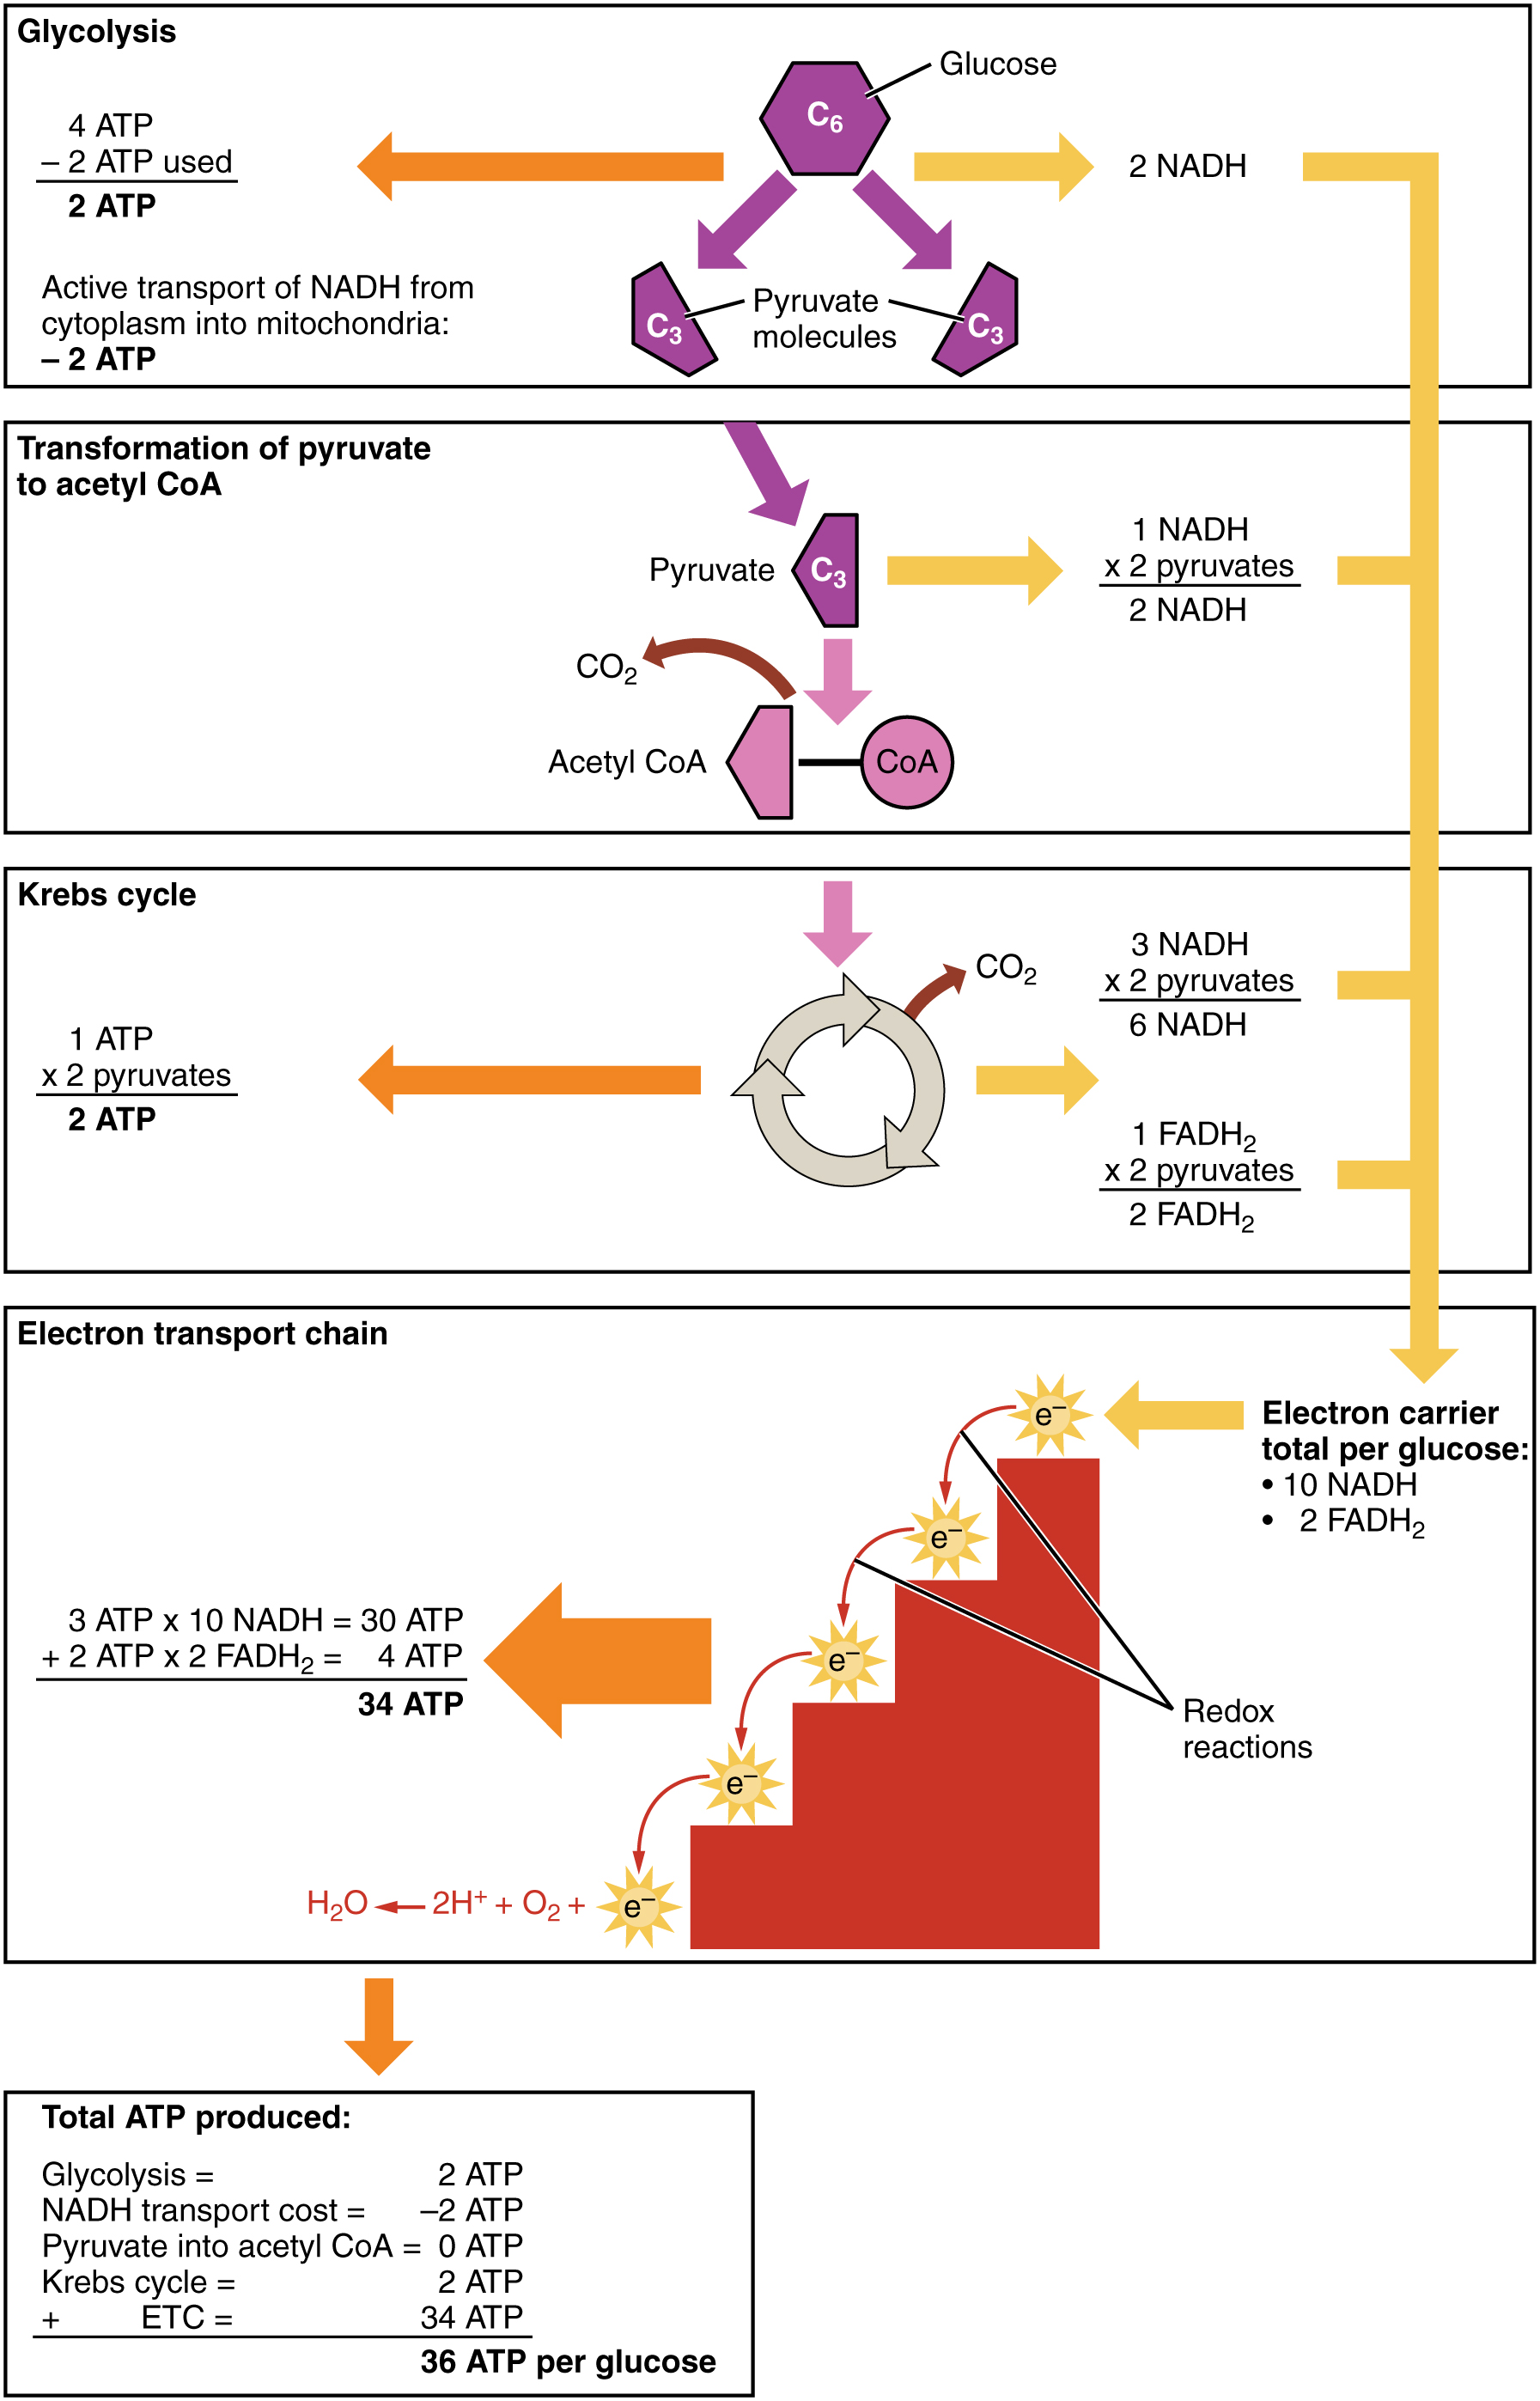 This figure shows the different steps in which carbohydrates are metabolized and lists the number of ATP molecules produced in each step. The different steps shown are glycolysis, transformation of pyruvate to acetyl-CoA, the Krebs cycle, and the electron transport chain.